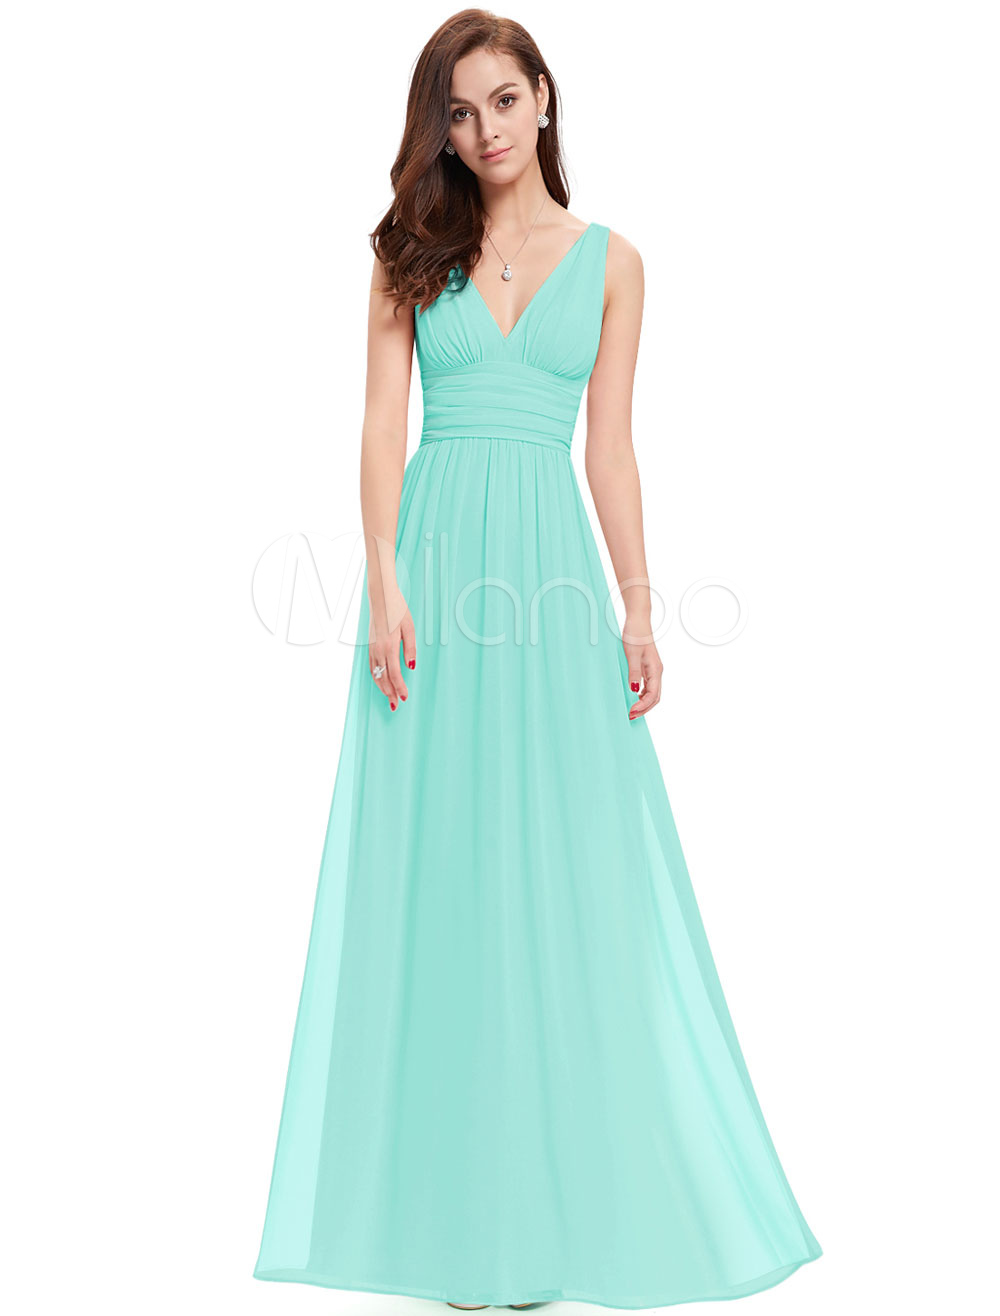 Chiffon Mother Dress Mint Green Long Prom Dress V Neck A Line Floor Length Party Dress